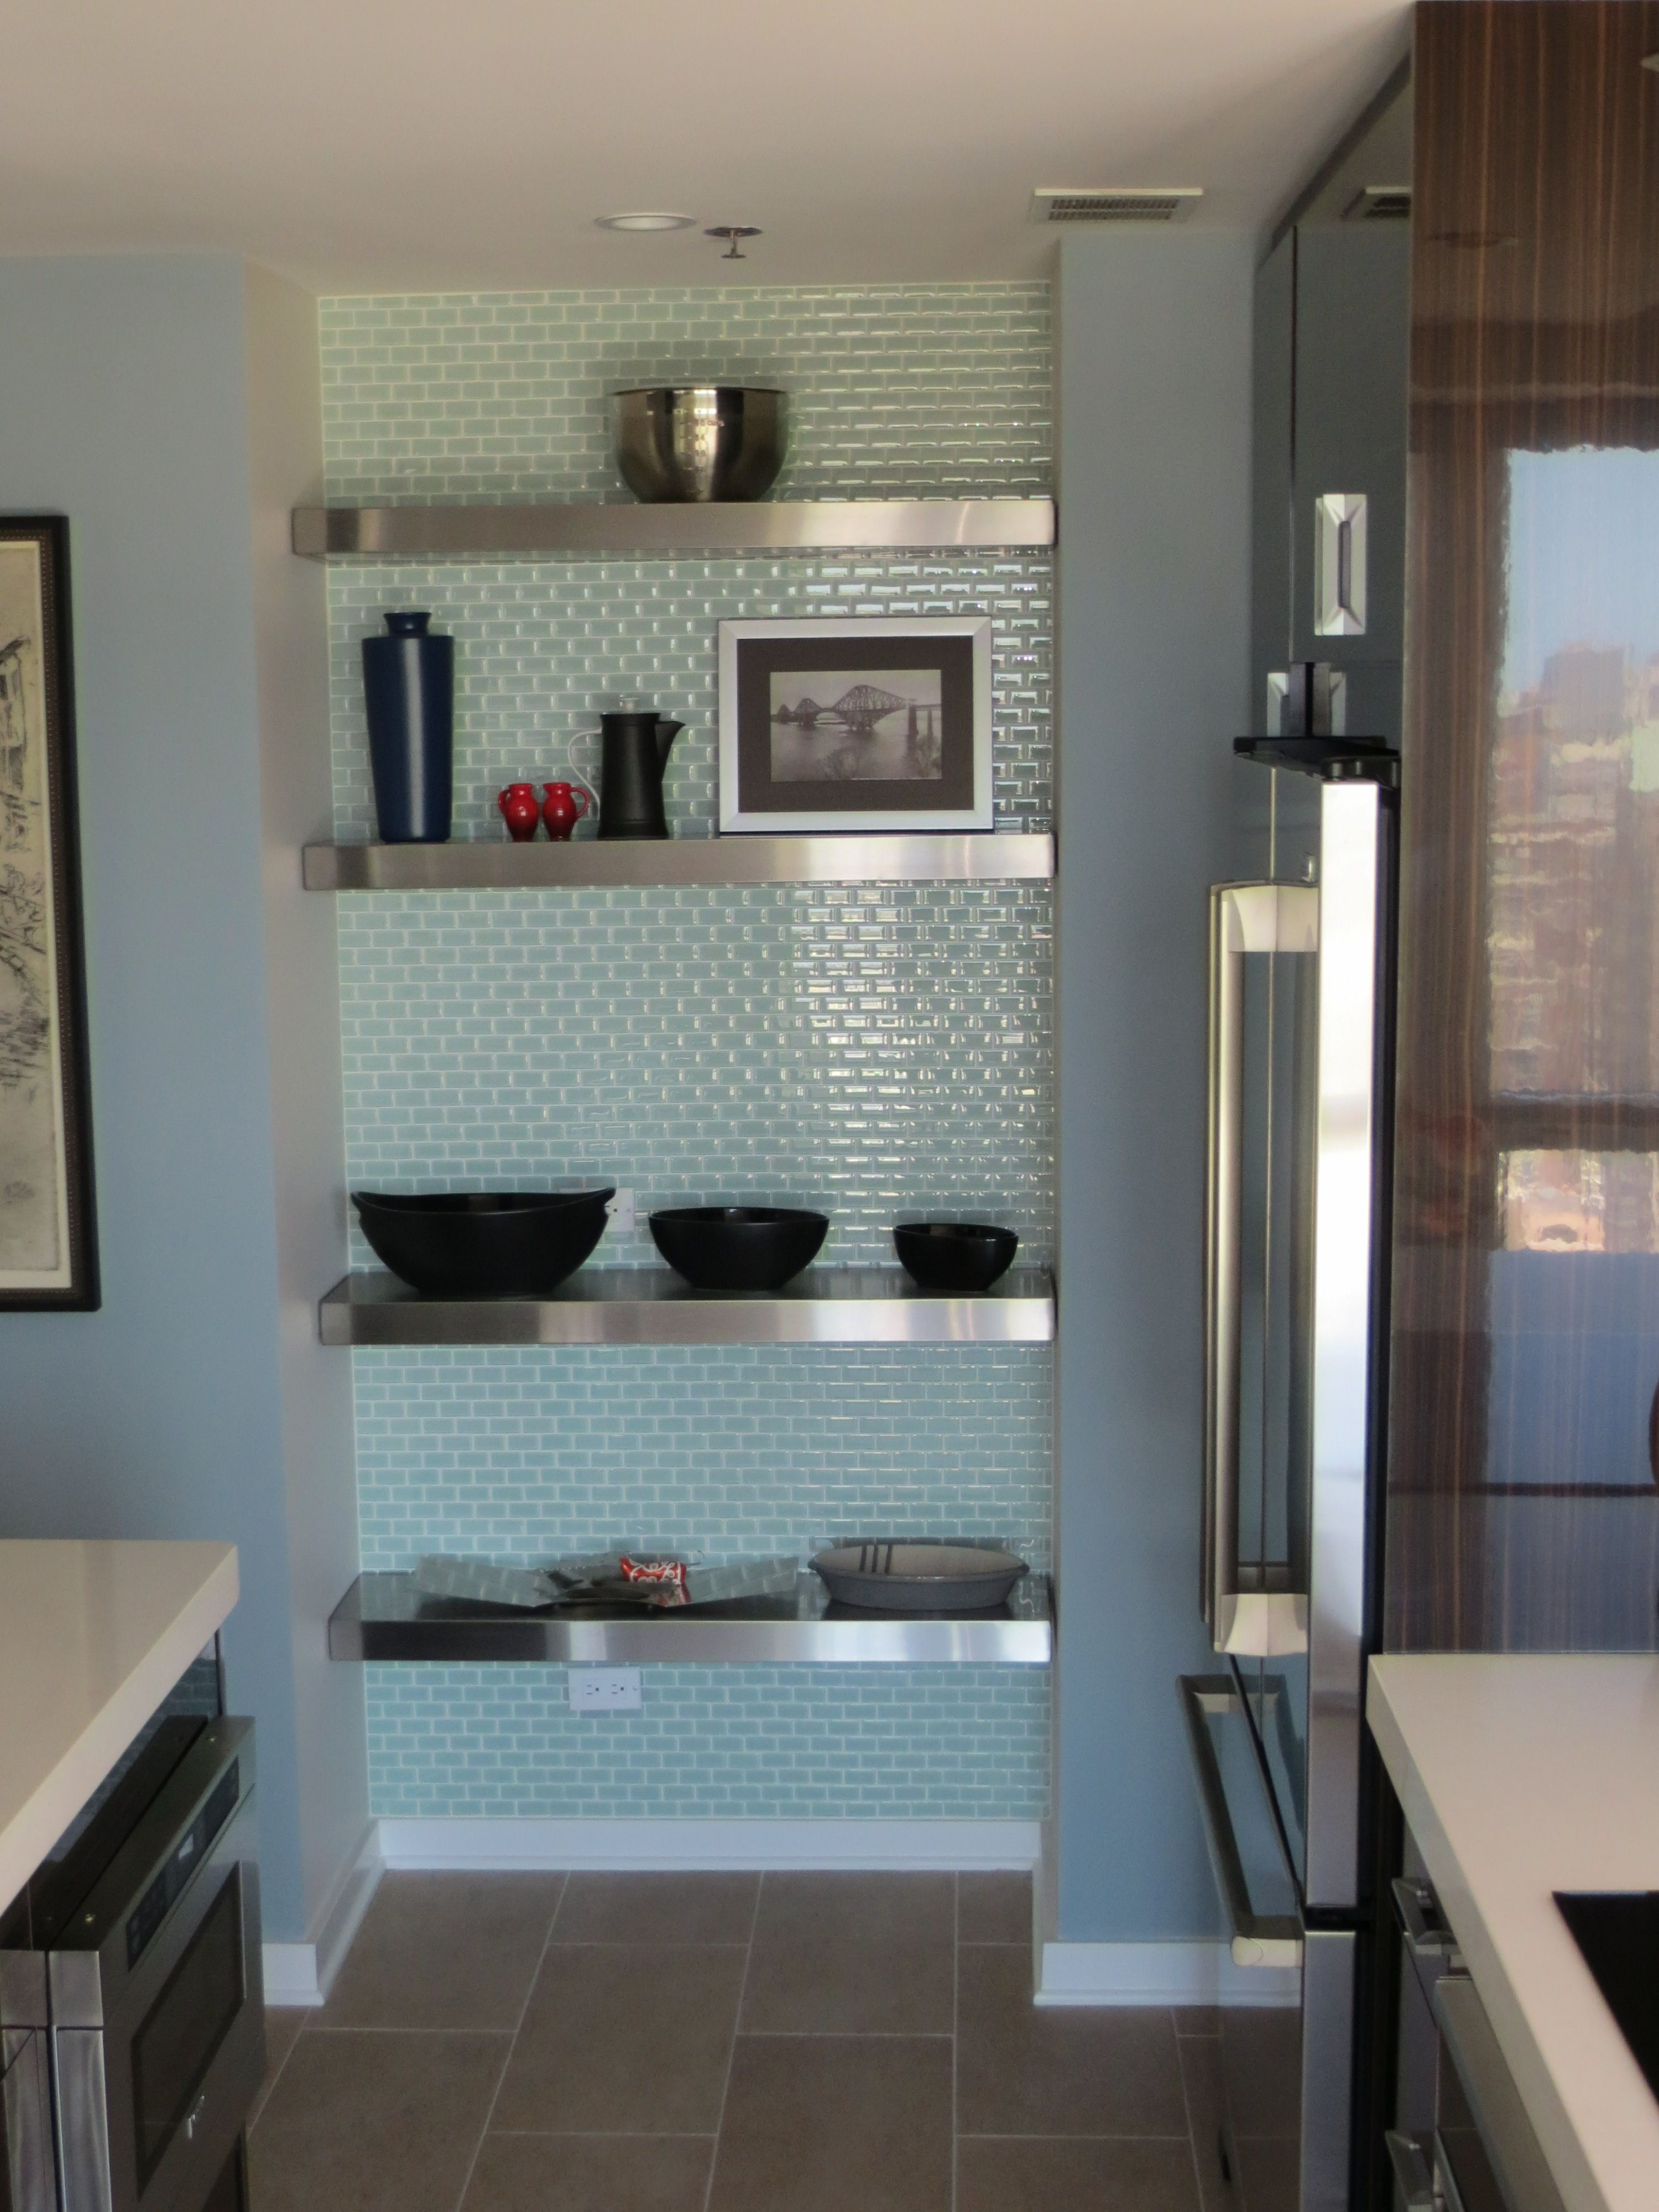 Modern Kitchen Alcove Floating Stainless Steel Shelves With Glass Tile